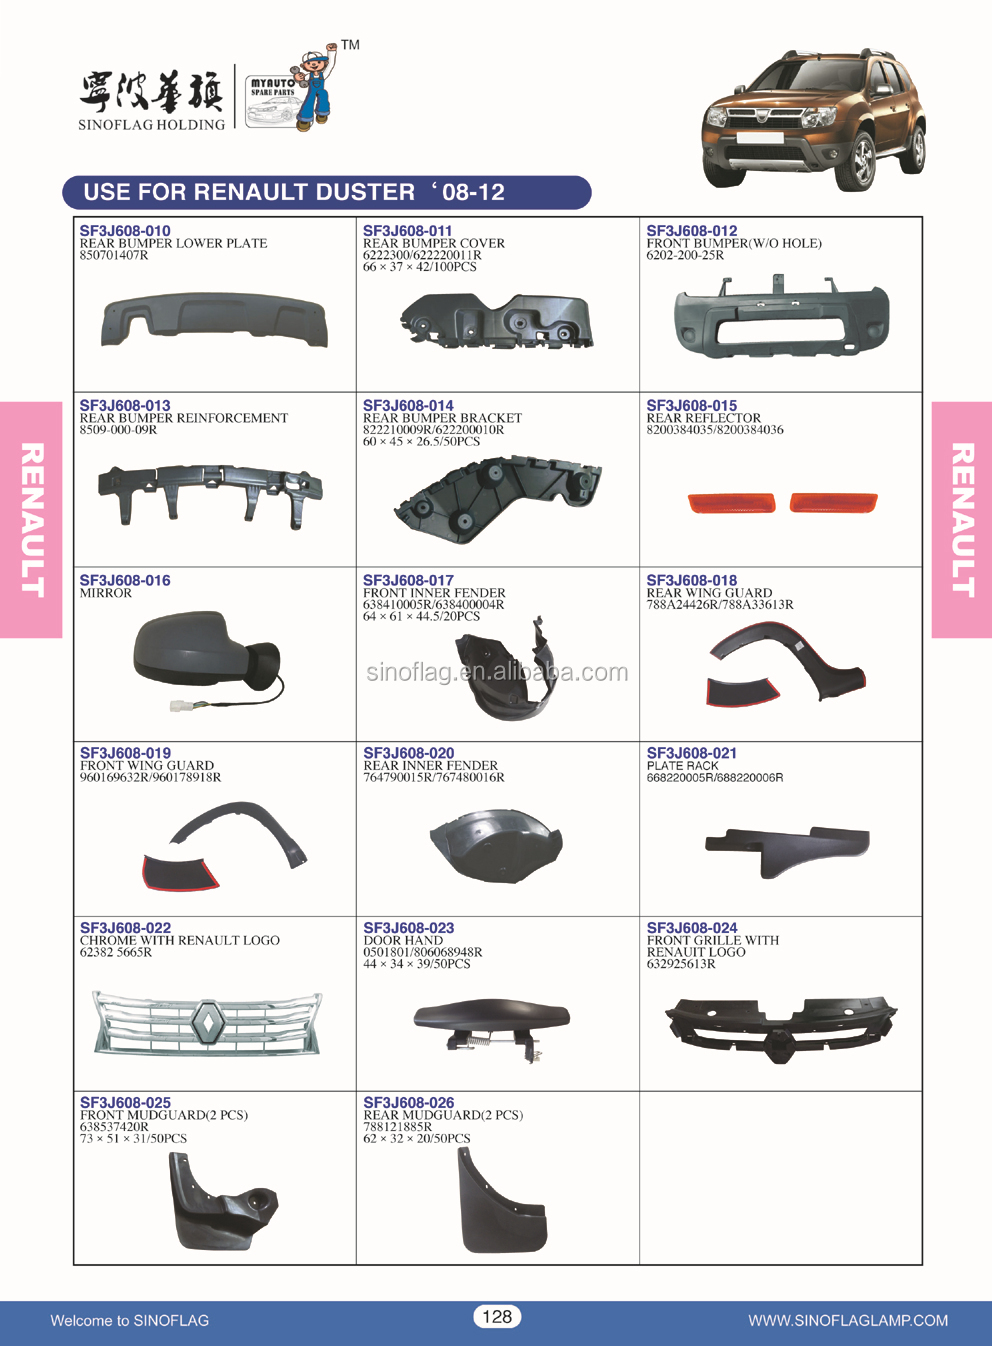 AUTO PARTS FOR RENAULT DUSTER 2008-2012